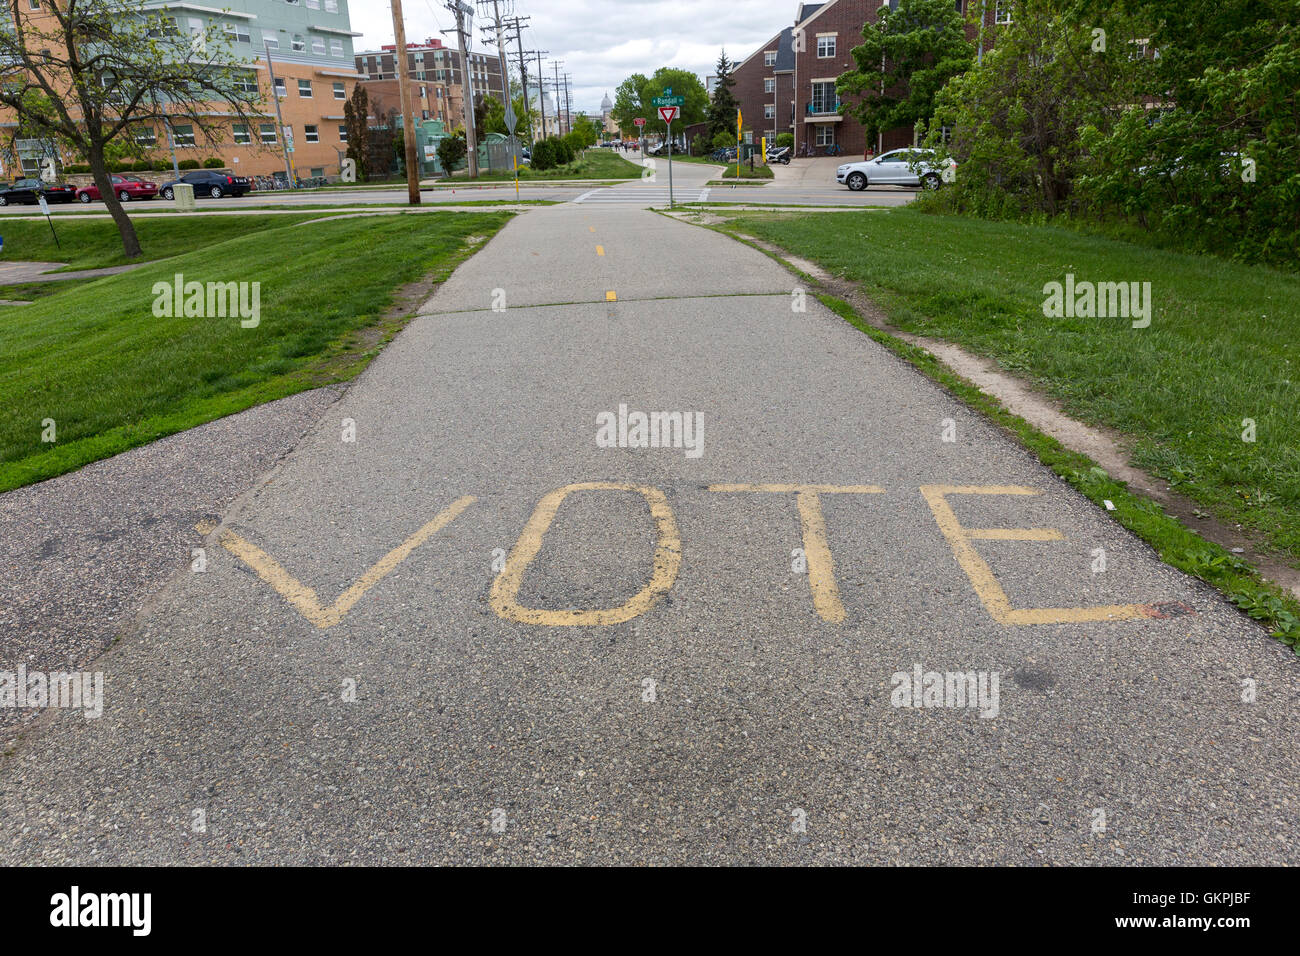 VOTE painted on a bike path at the University of Wisconsin, Madison - Stock Image